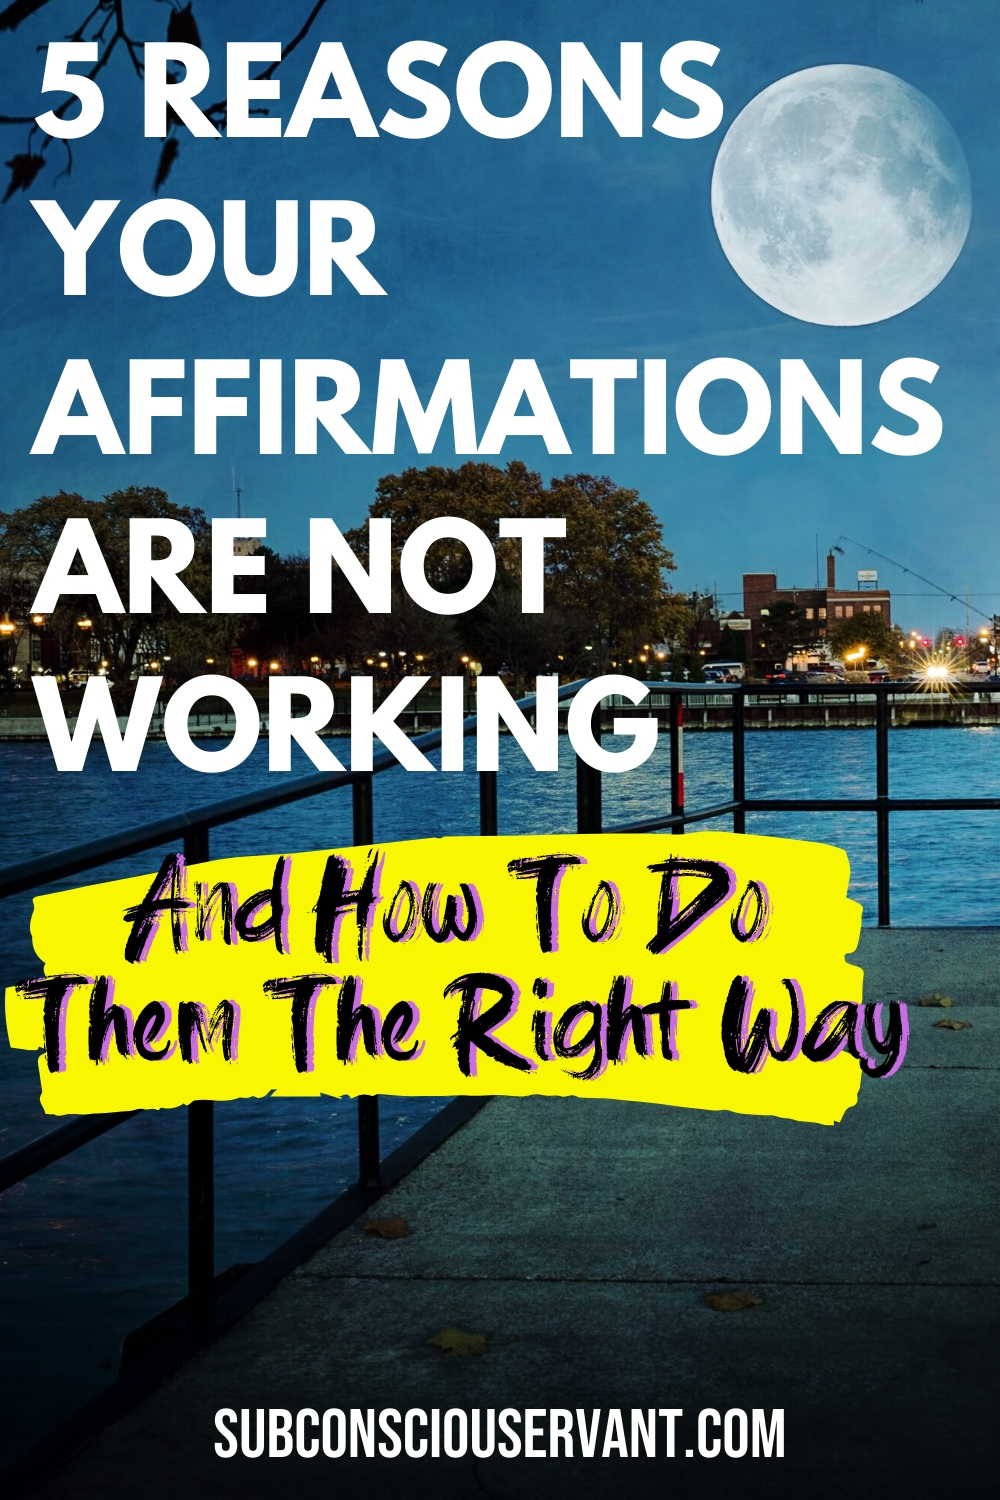 5 Reasons Why Your Affirmations Are Not Working